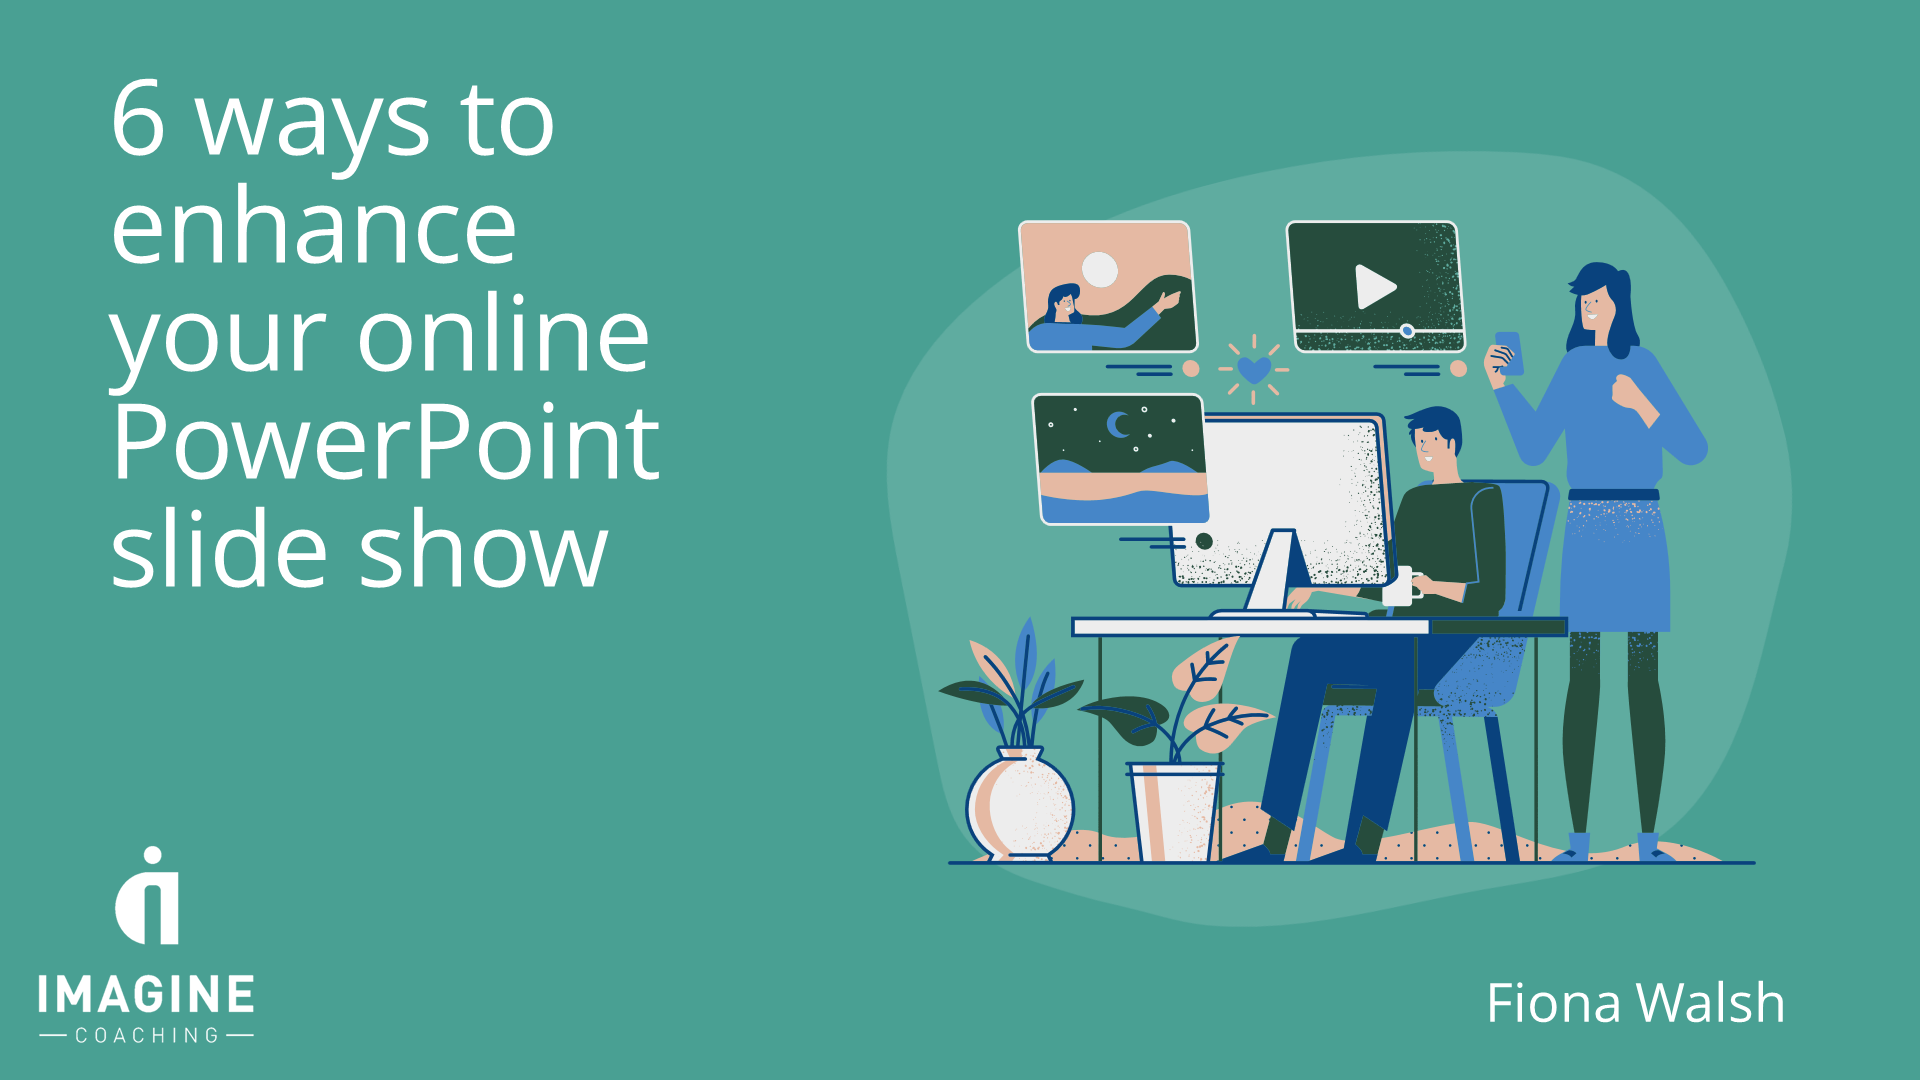 6 Ways to Enhance Your Online PowerPoint Slide Show